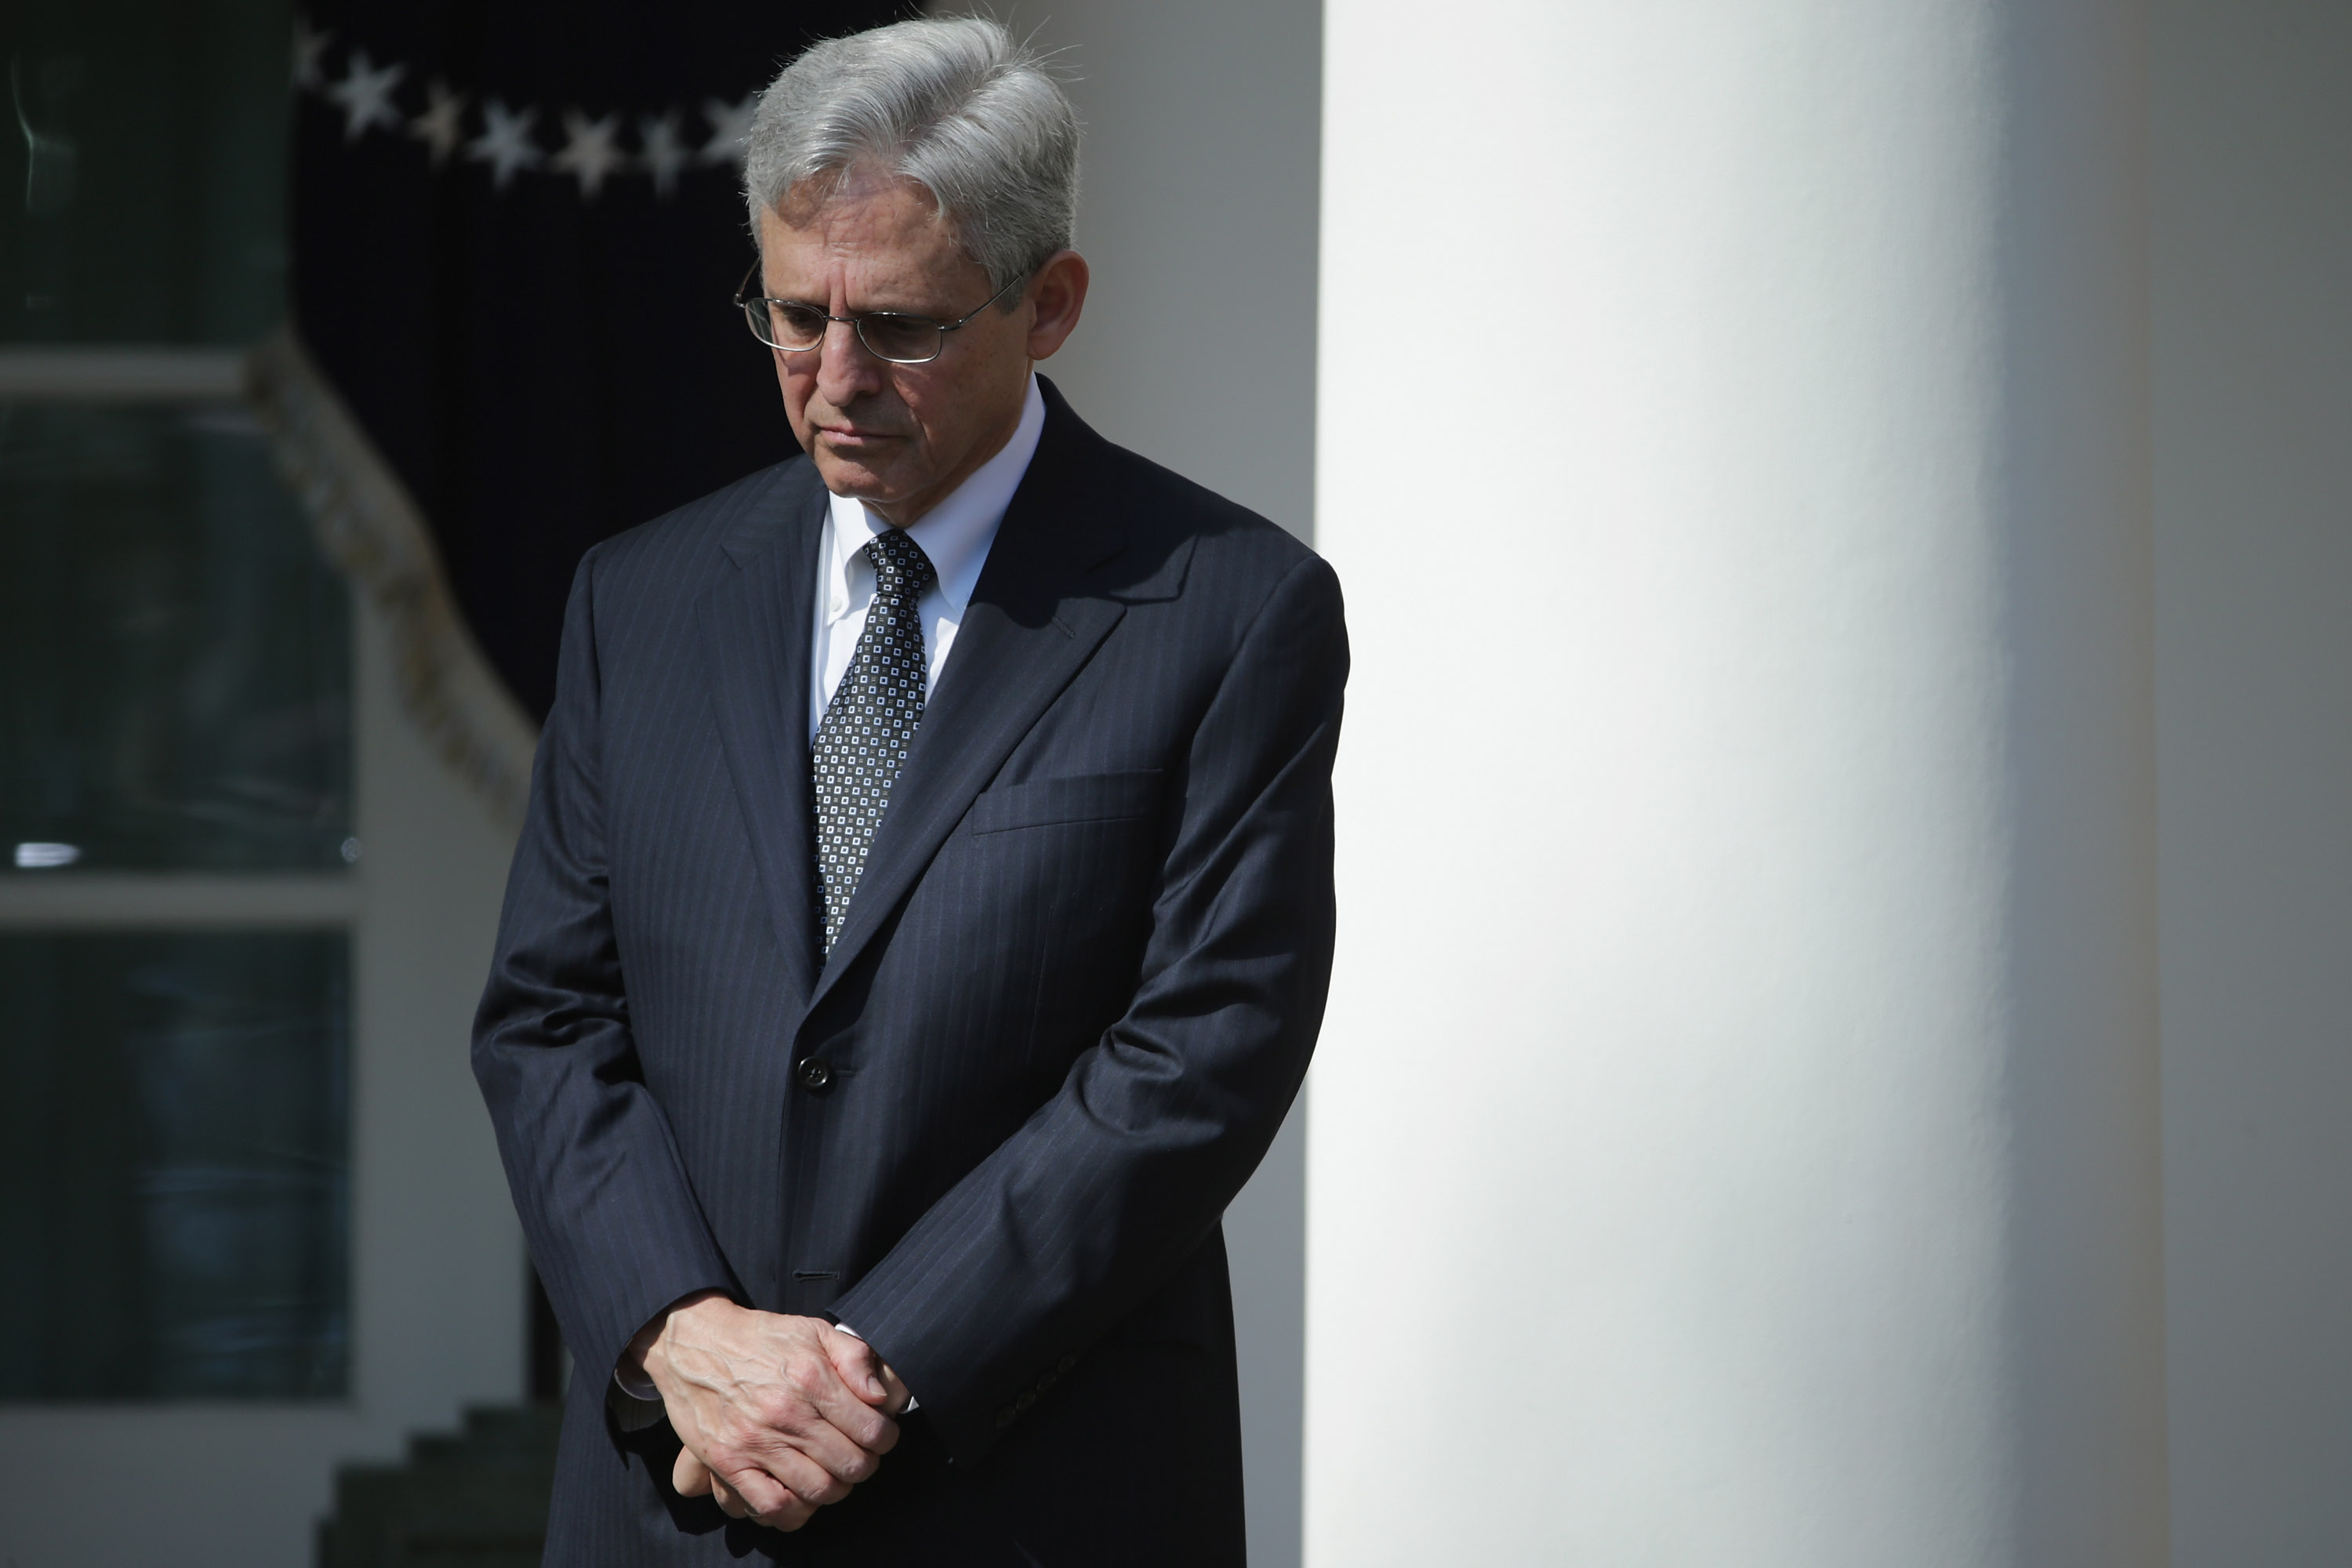 Judge Merrick Garland, U.S. President Barack Obama's nominee to replace the late Supreme Court Justice Antonin Scalia, is introduced in the Rose Garden at the White House in Washington, D.C., on March 16, 2016.